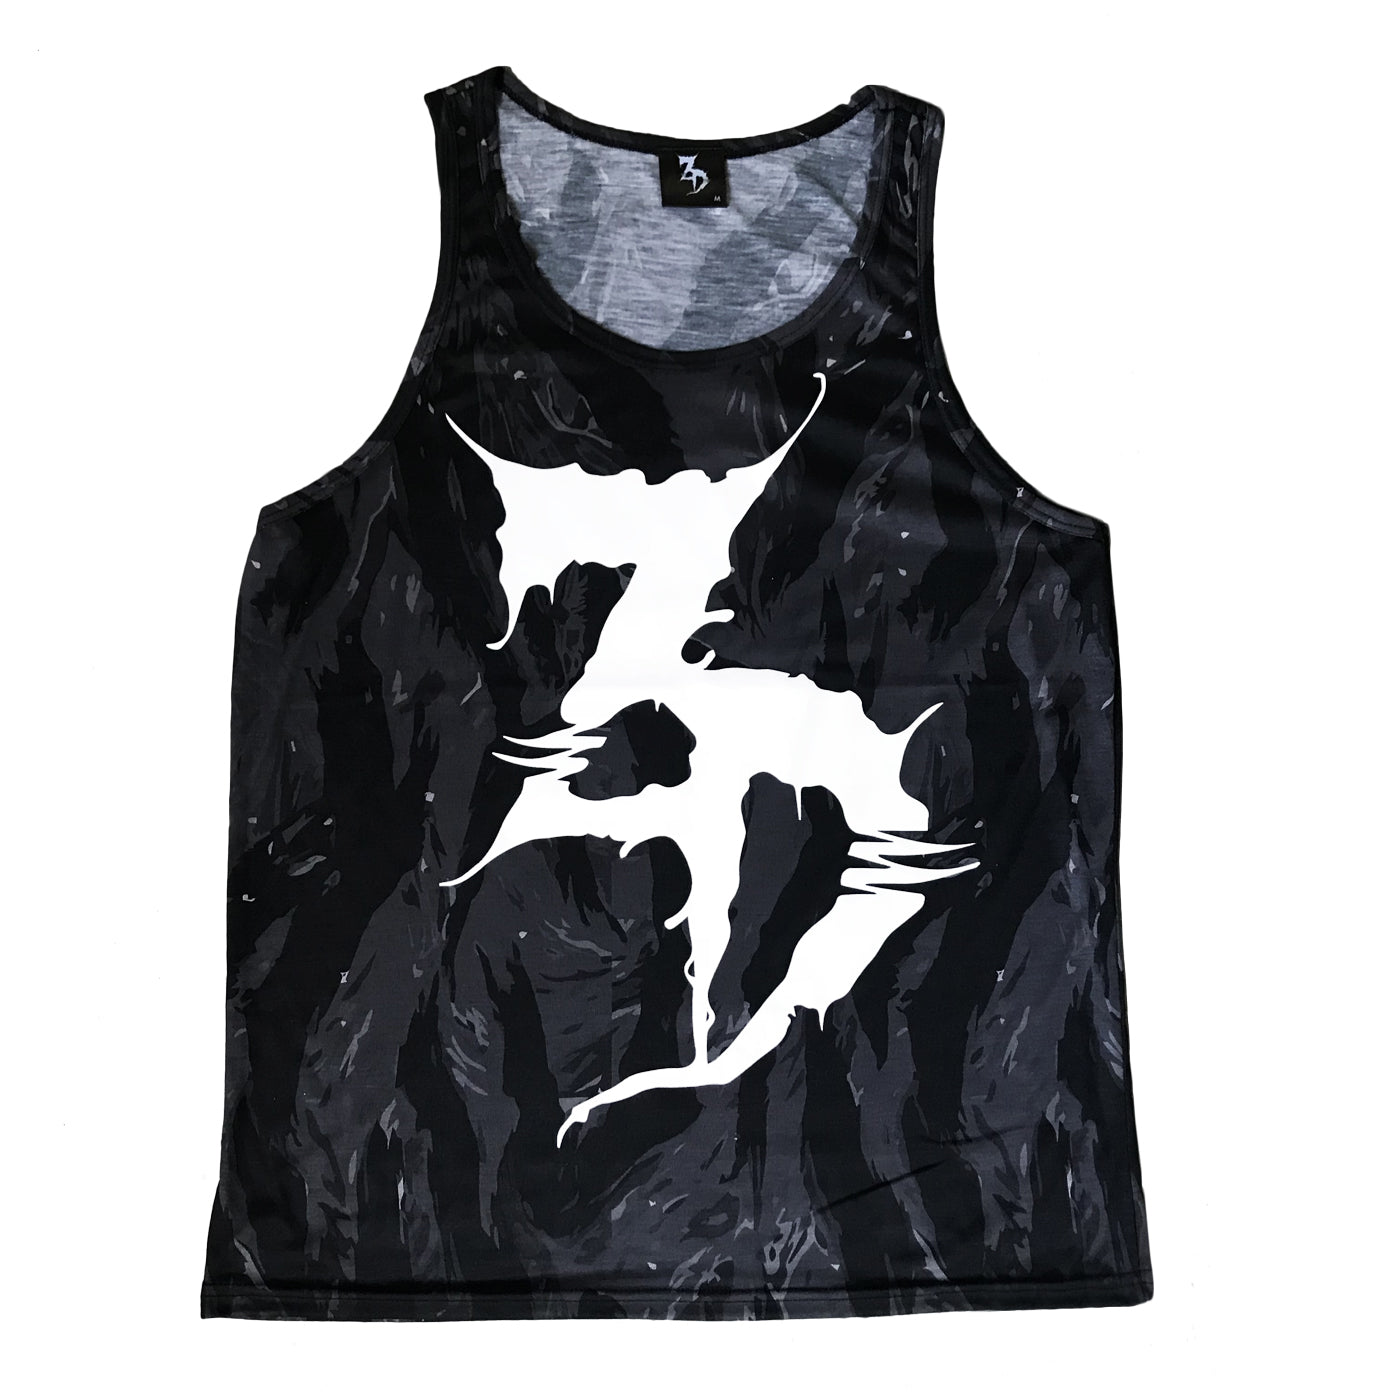 ZD - Midnight Camo Unisex Tank Top